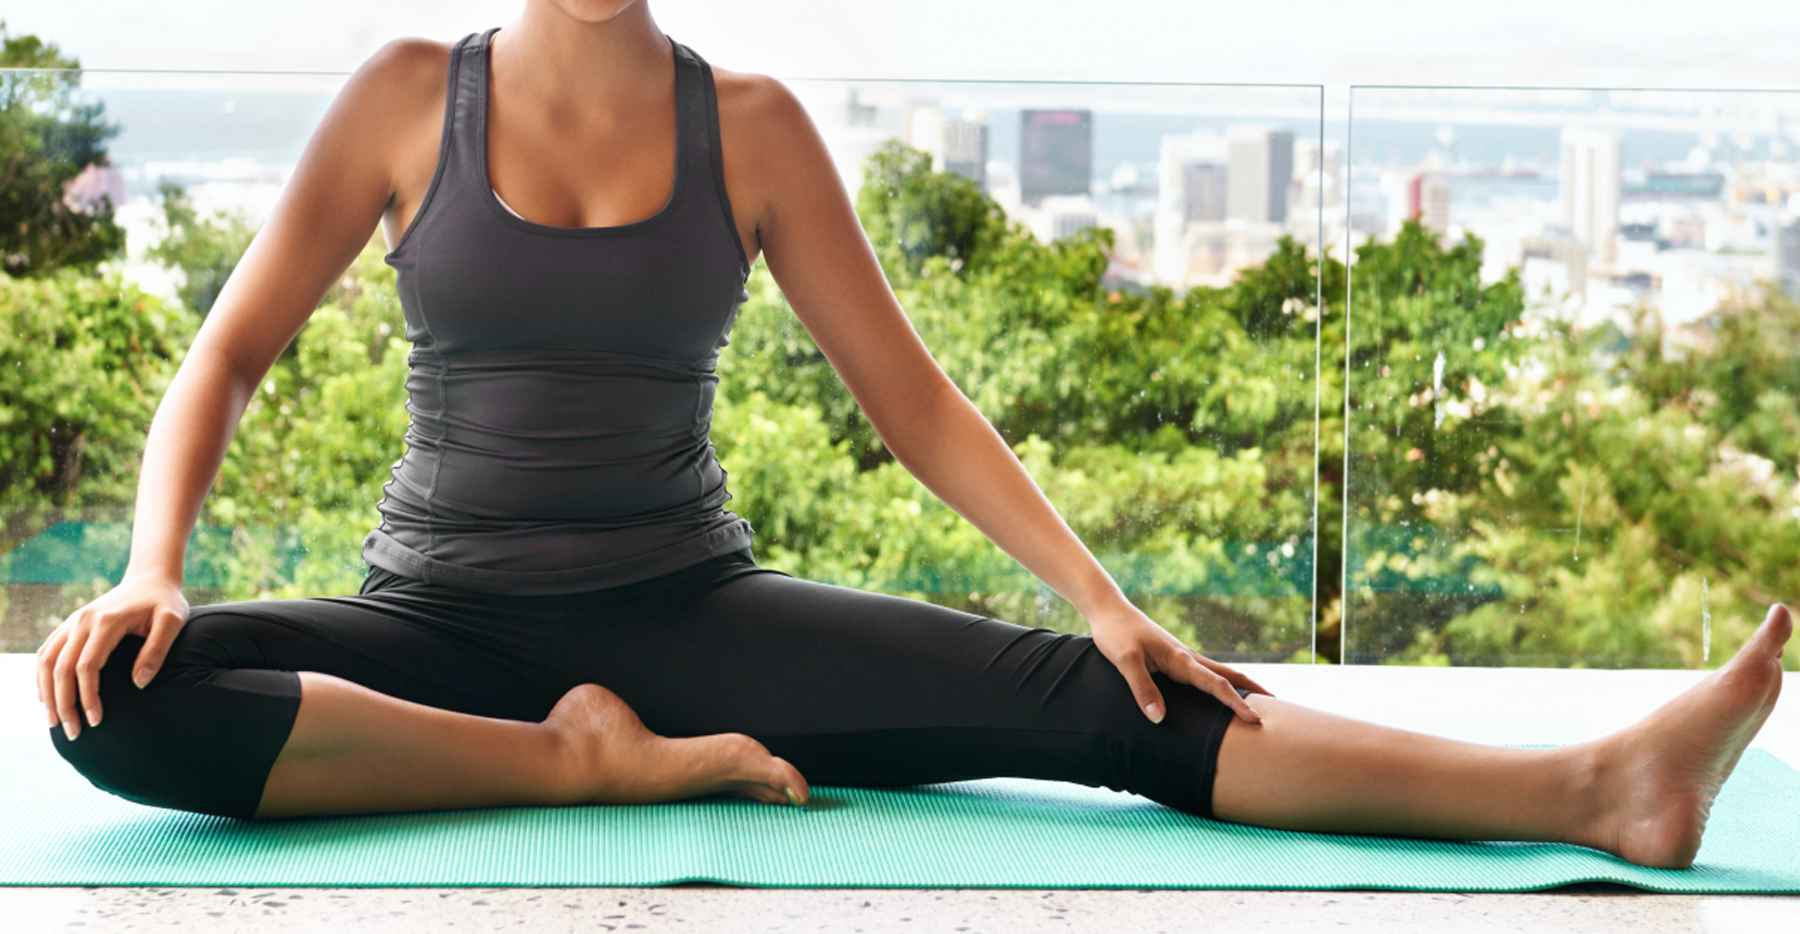 Immense Benefits Of Yoga In Our Day-To-Day Life